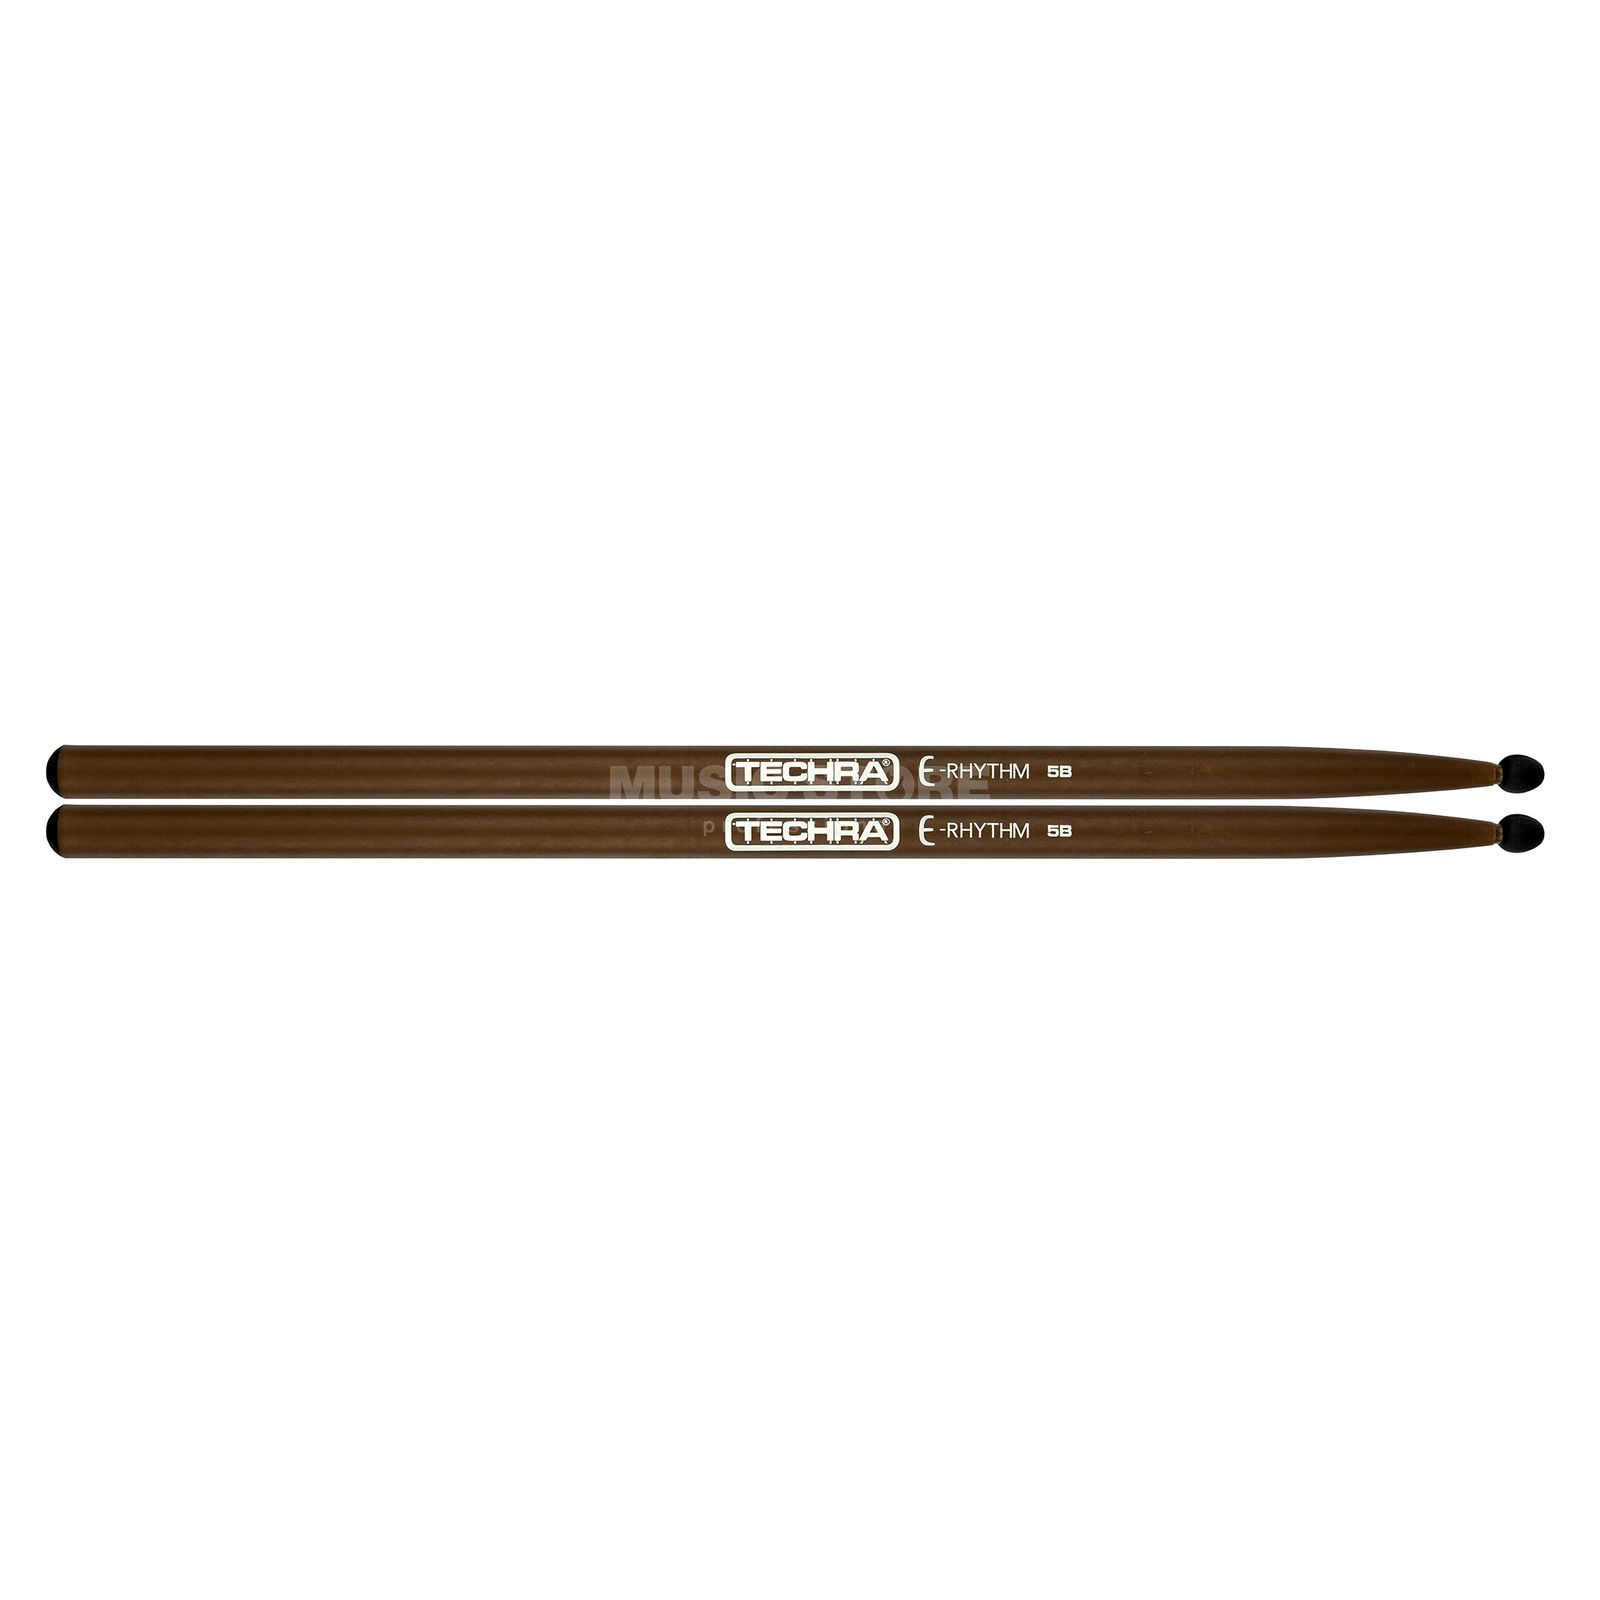 Techra E-Rhythm Sticks 5B Produktbild